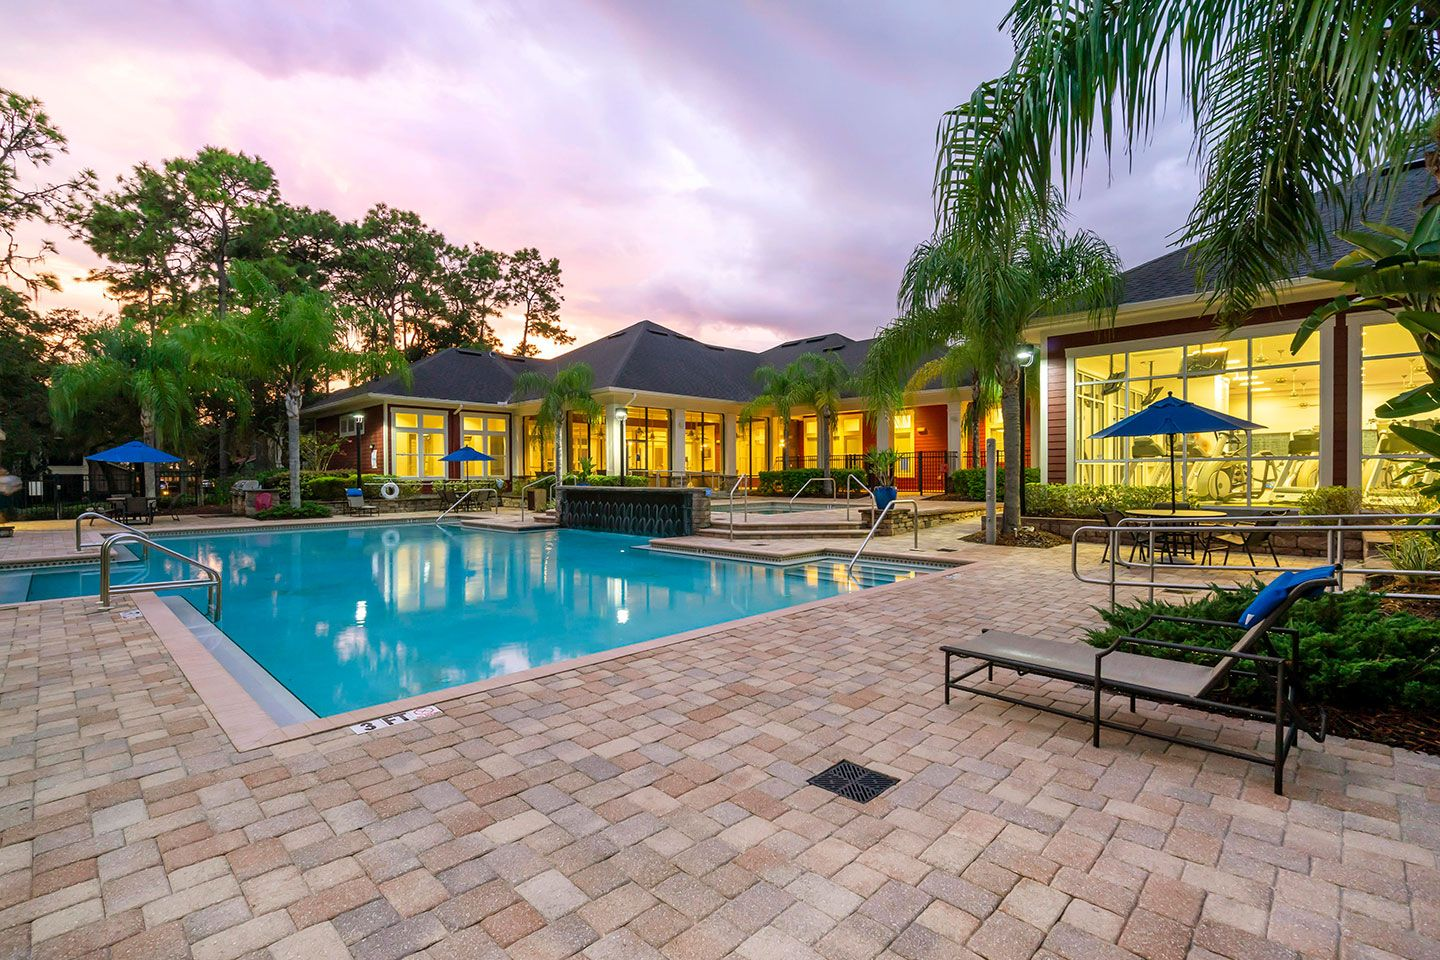 Large swimming pool and loungers at dusk